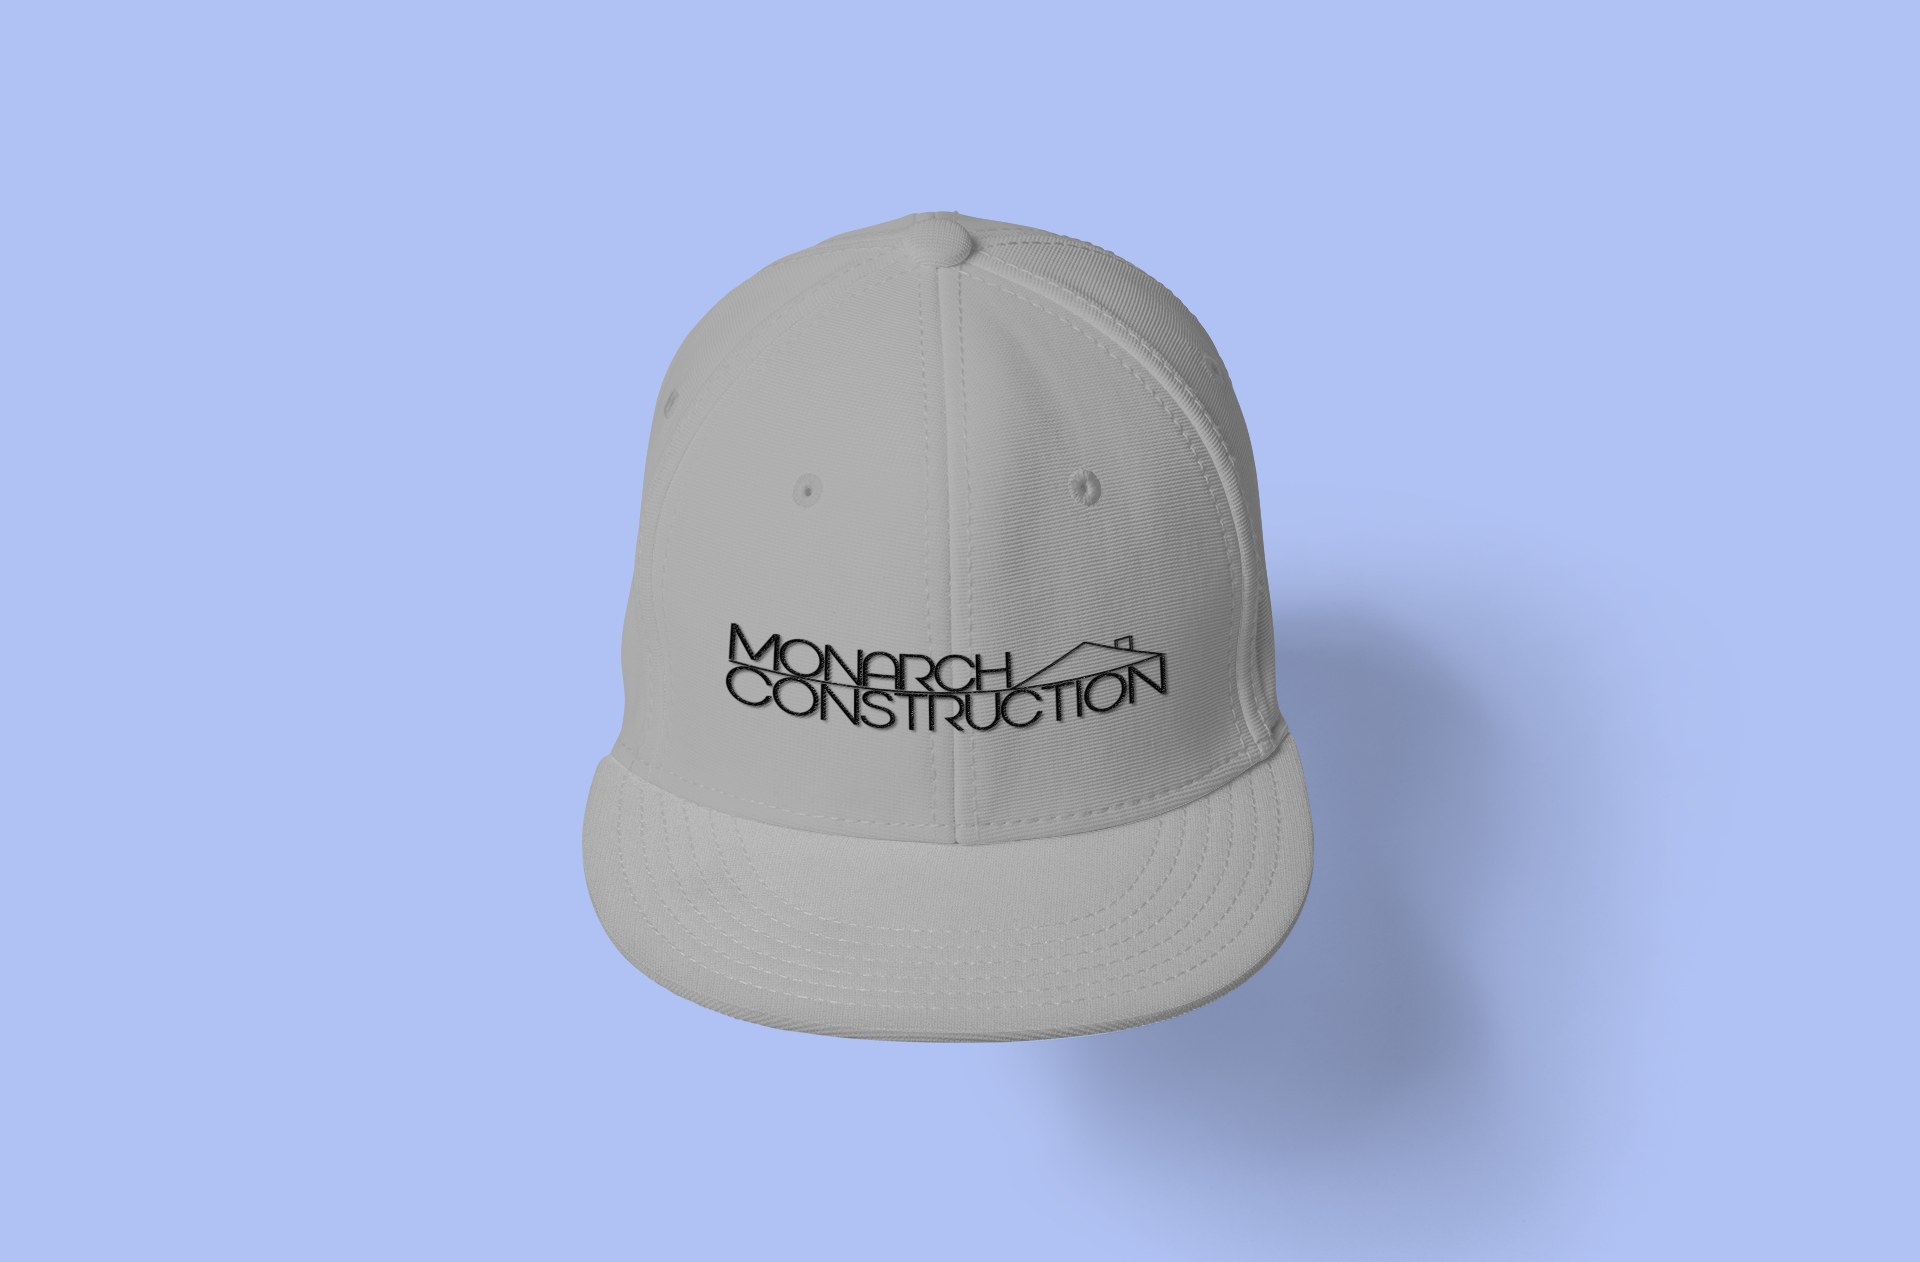 Branding and Work Uniform Hat Design by Thomas Mee Design Works